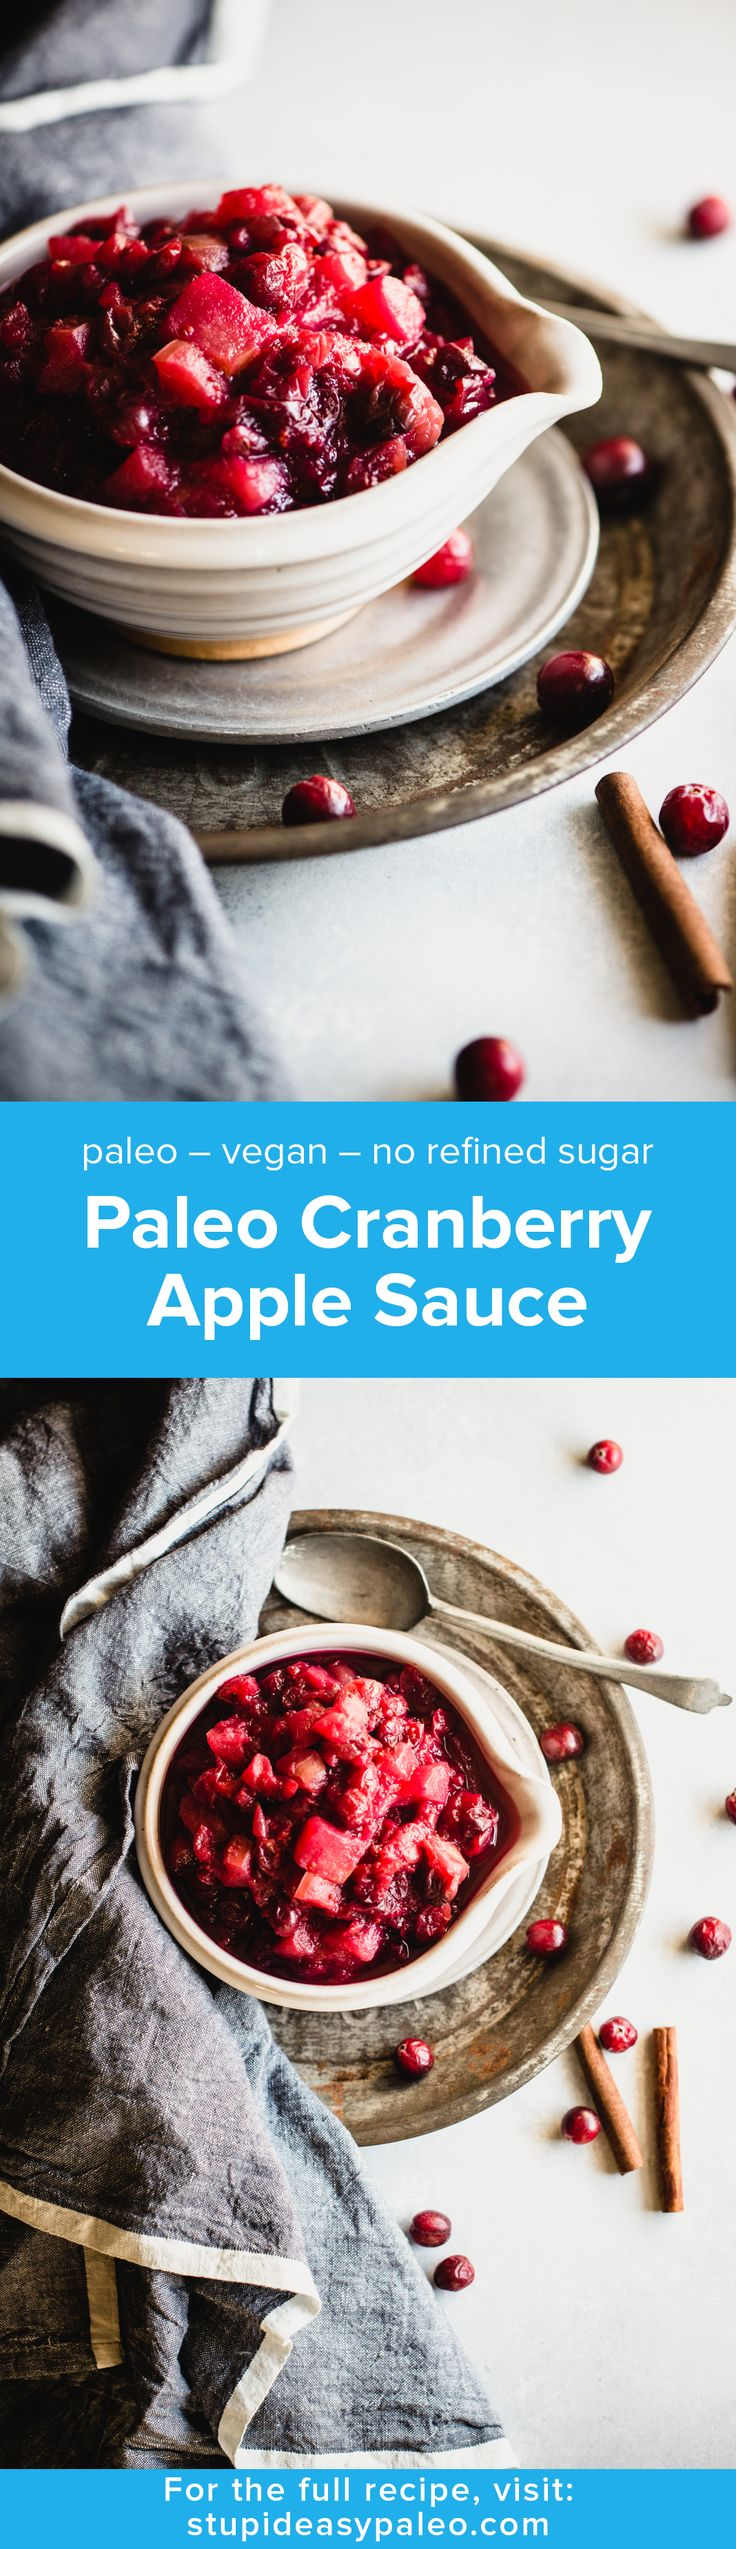 Paleo Cranberry Apple Sauce is the perfect healthy side dish for any holiday meal. Simple to make, gluten-free, vegan, and refined sugar free. | StupidEasyPaleo.com